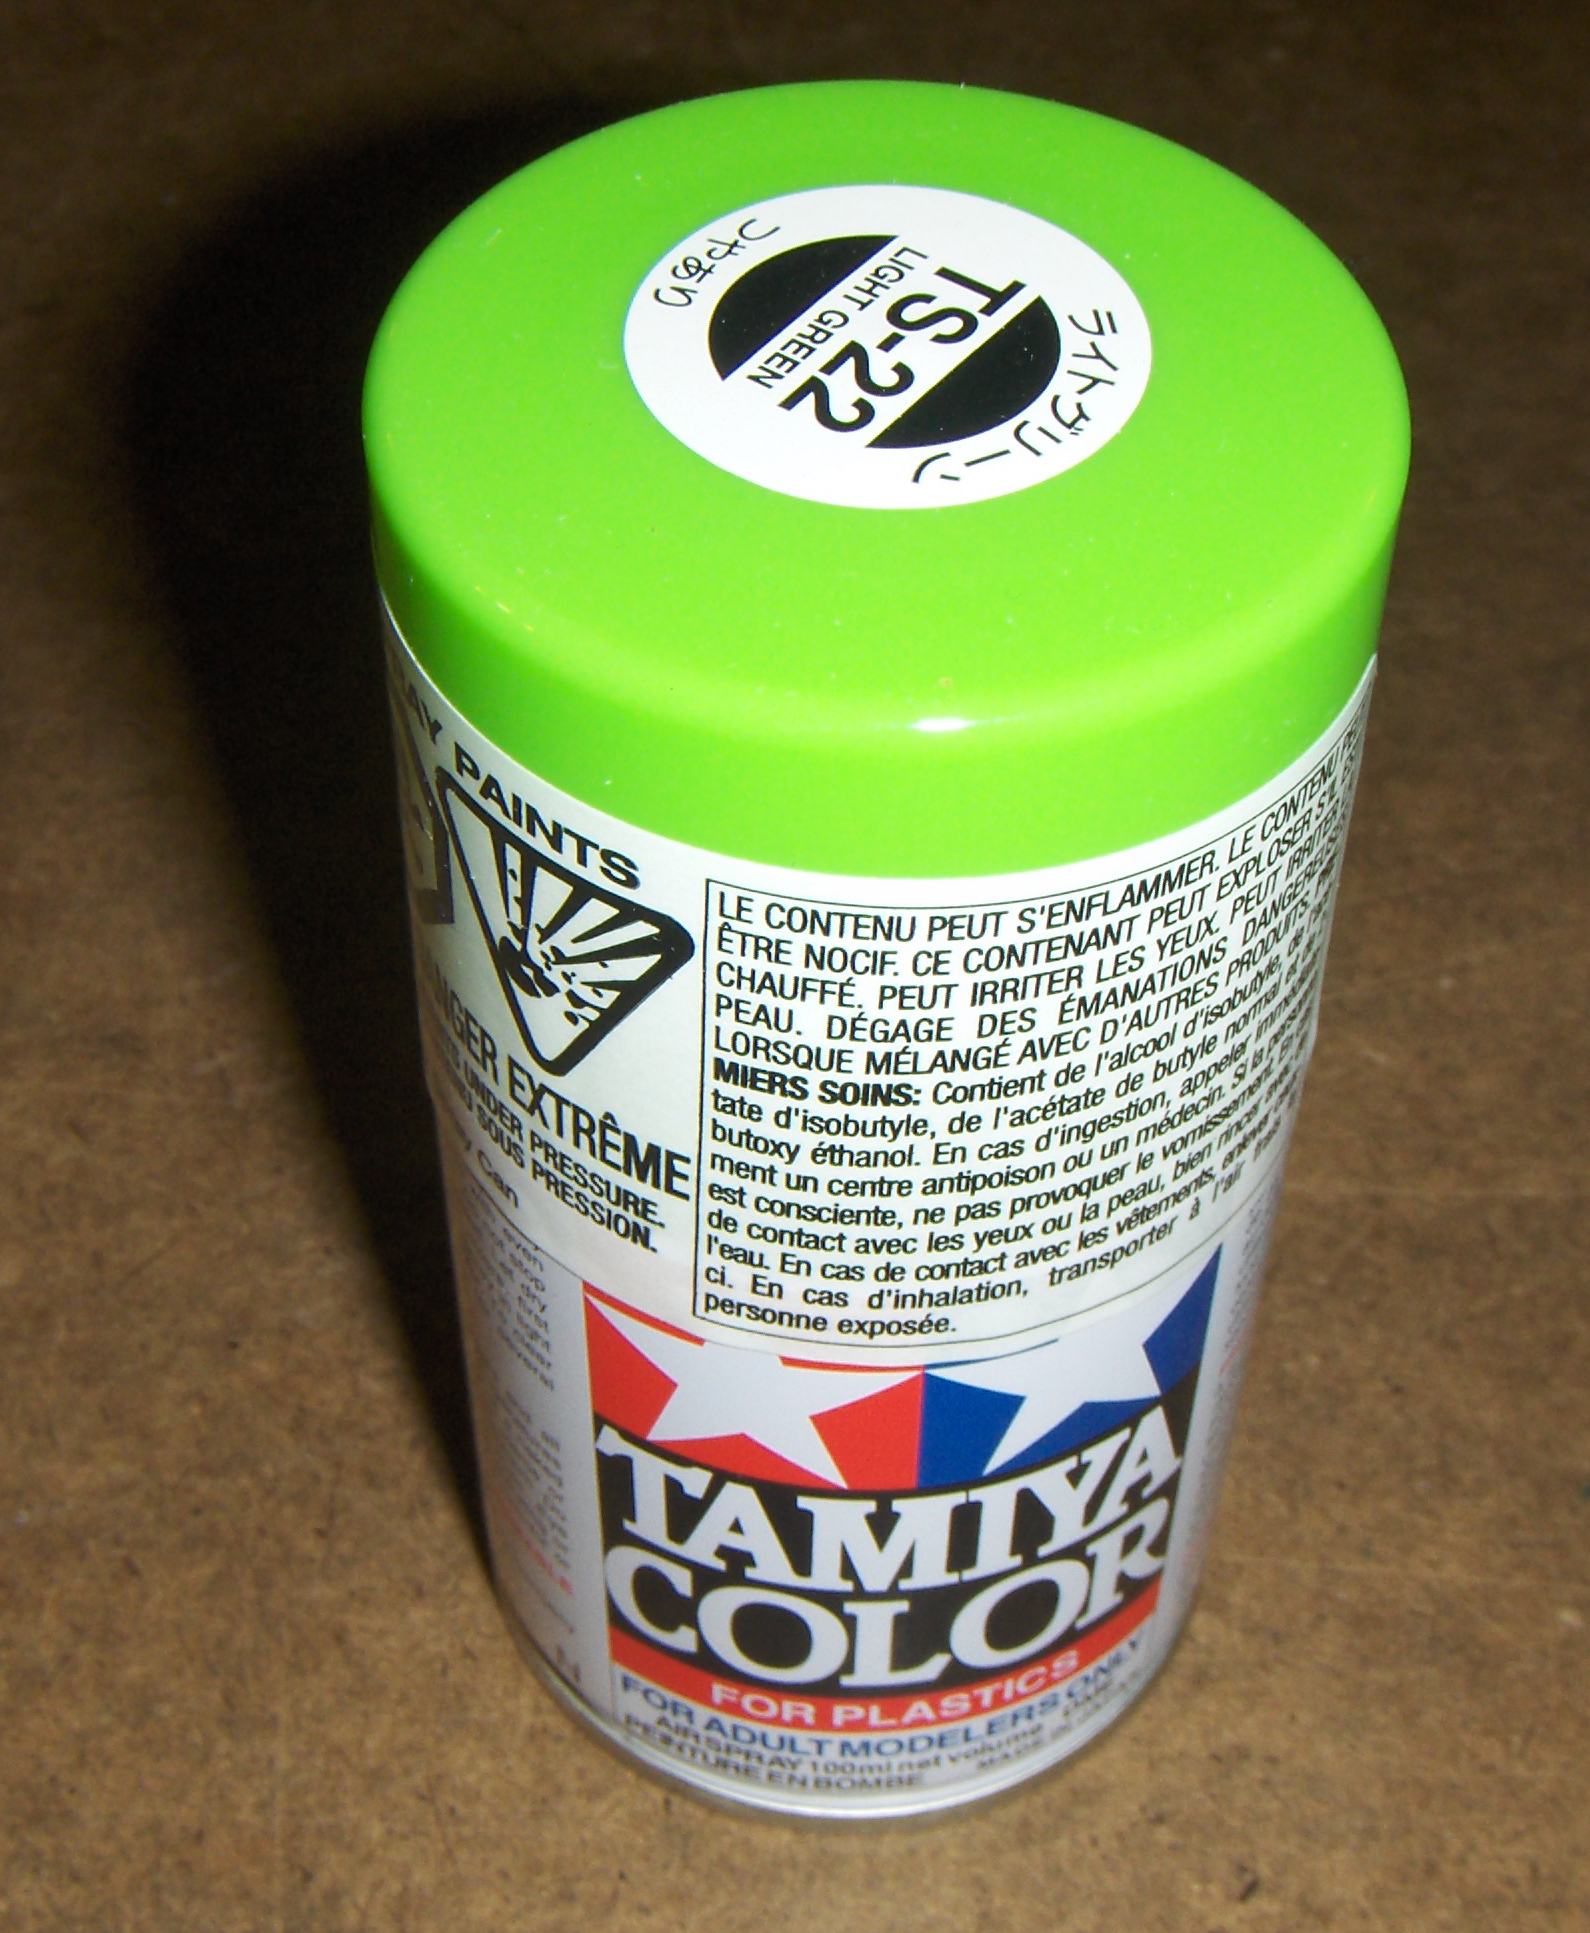 Tamiya Spray Paint Ts22 Light Green Online Shopping For Canadians Model Paints Tools